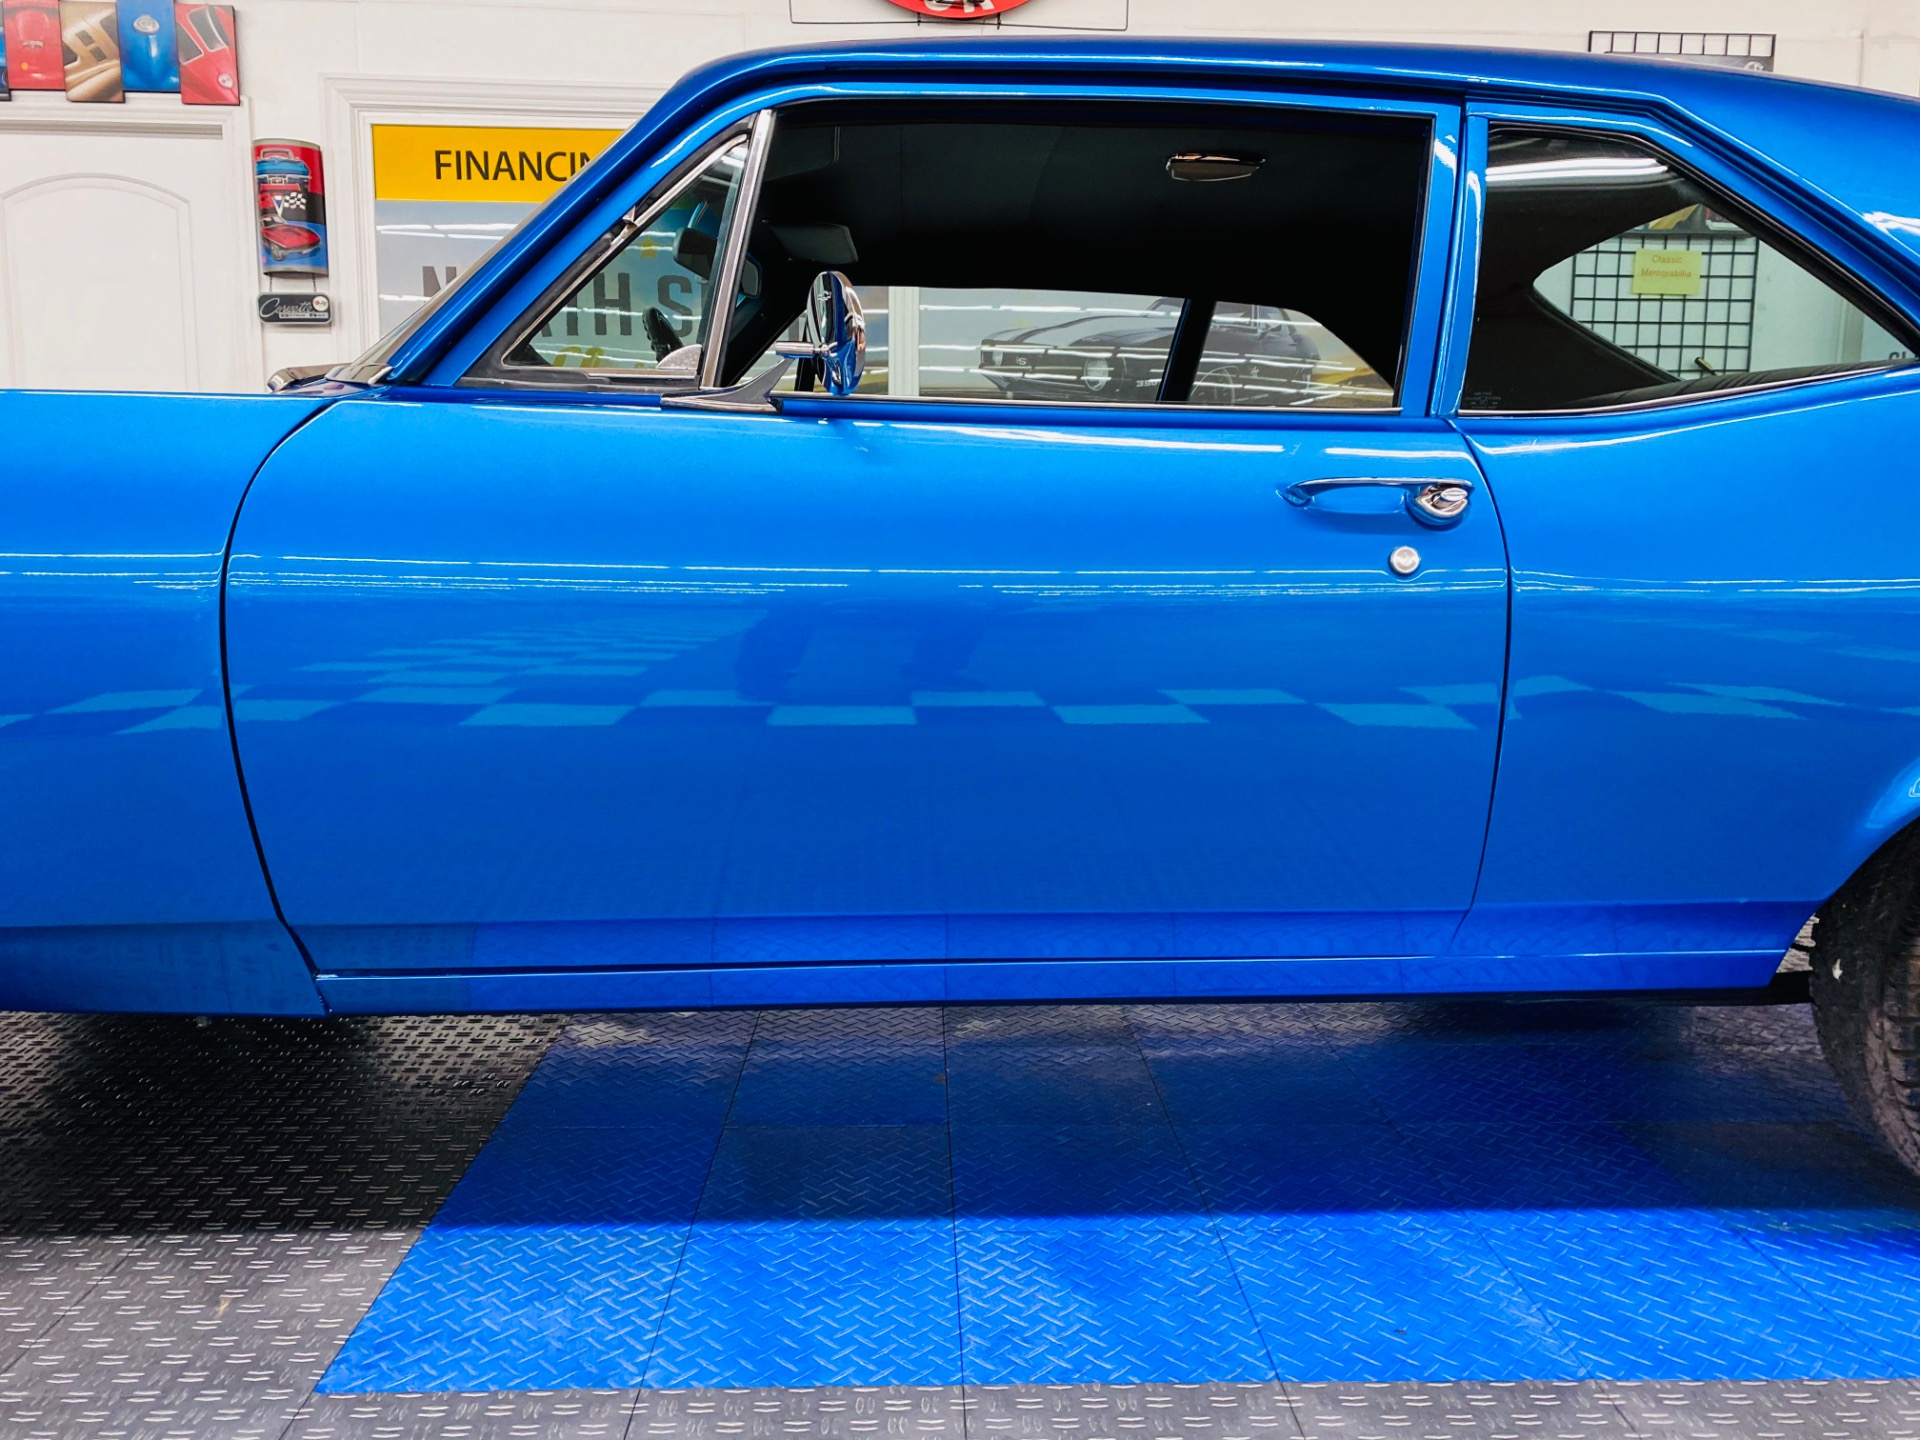 Used 1972 Chevrolet Nova -NEW PAINT - 4 SPEED - BRAND NEW A/C SYSTEM - SEE VIDEO - | Mundelein, IL